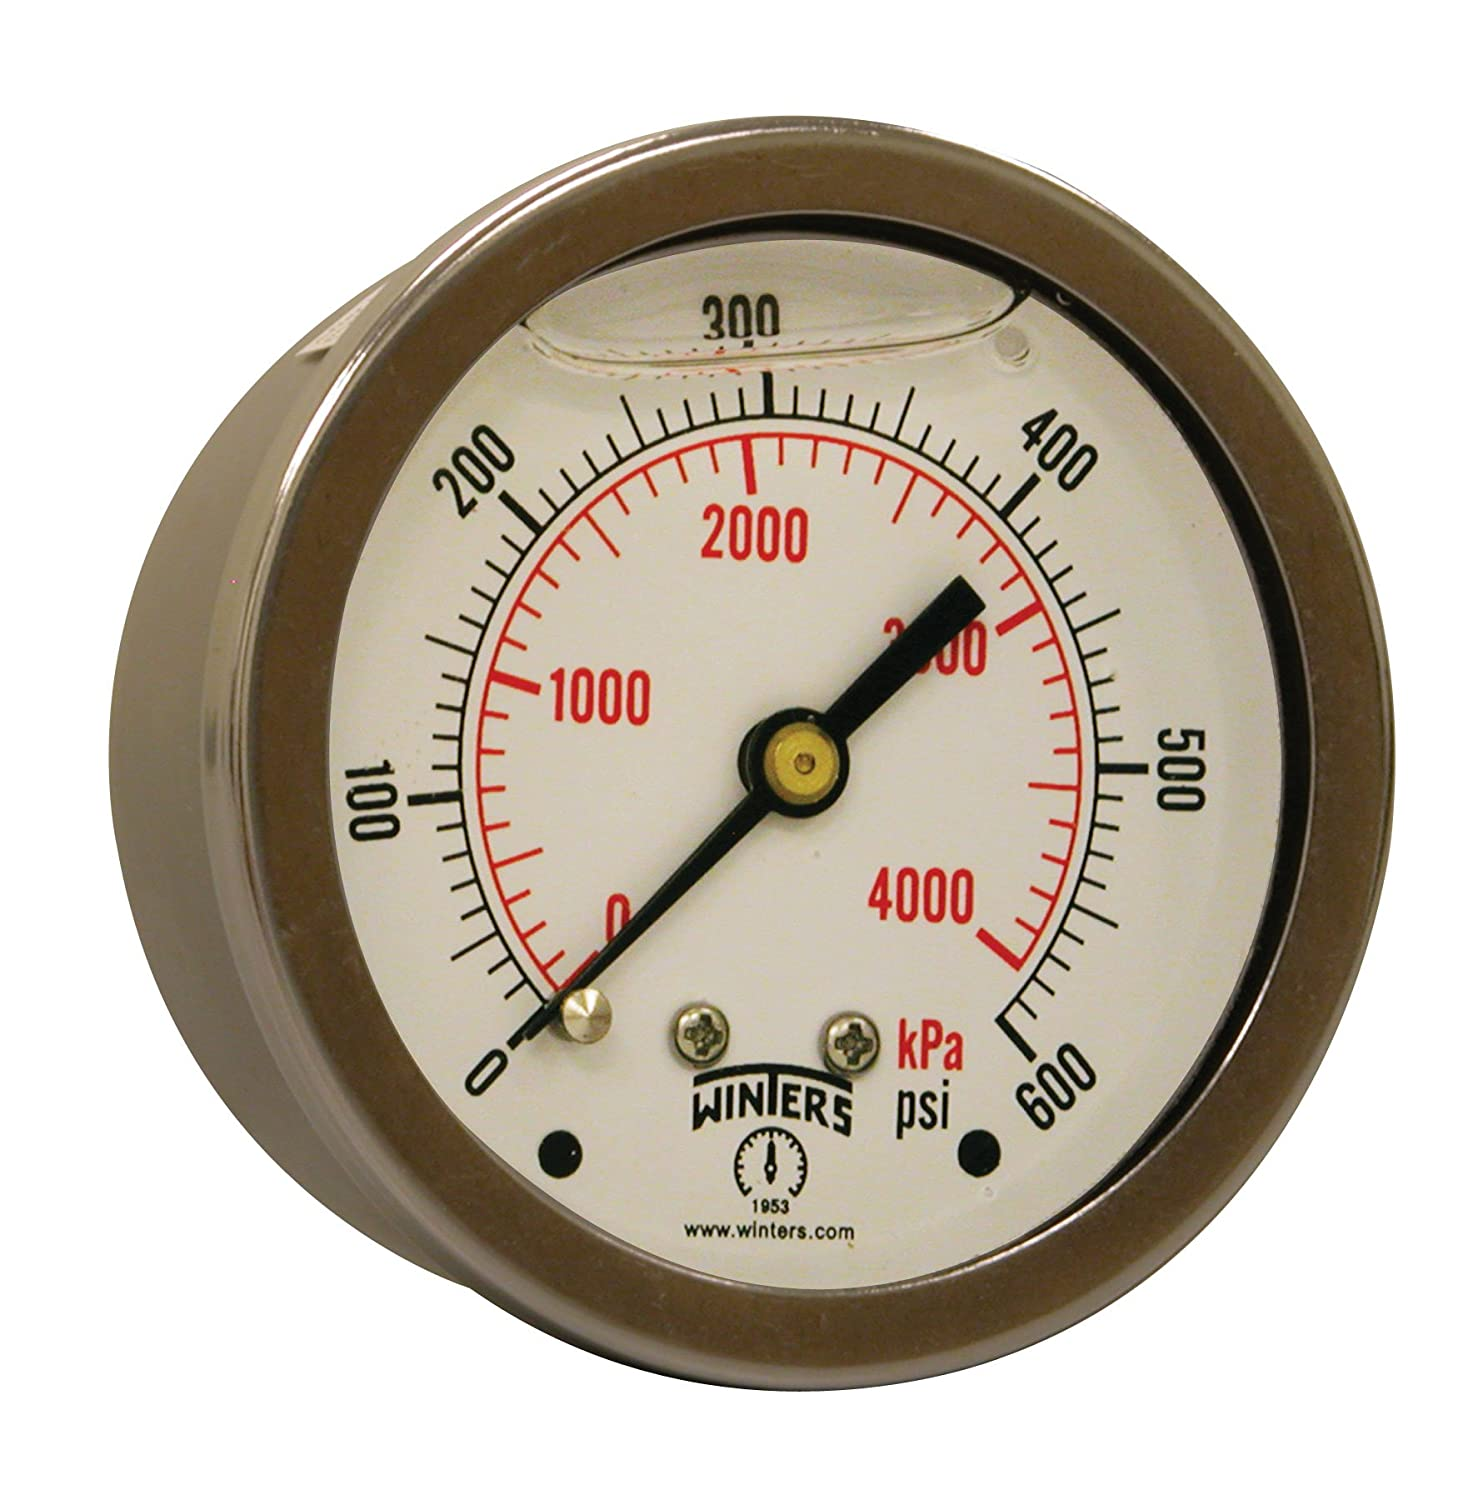 Winters PFQ Series Stainless Steel 304 Dual Scale Liquid Filled Pressure Gauge with Brass Internals, 0-600 psi/kpa,2-1/2